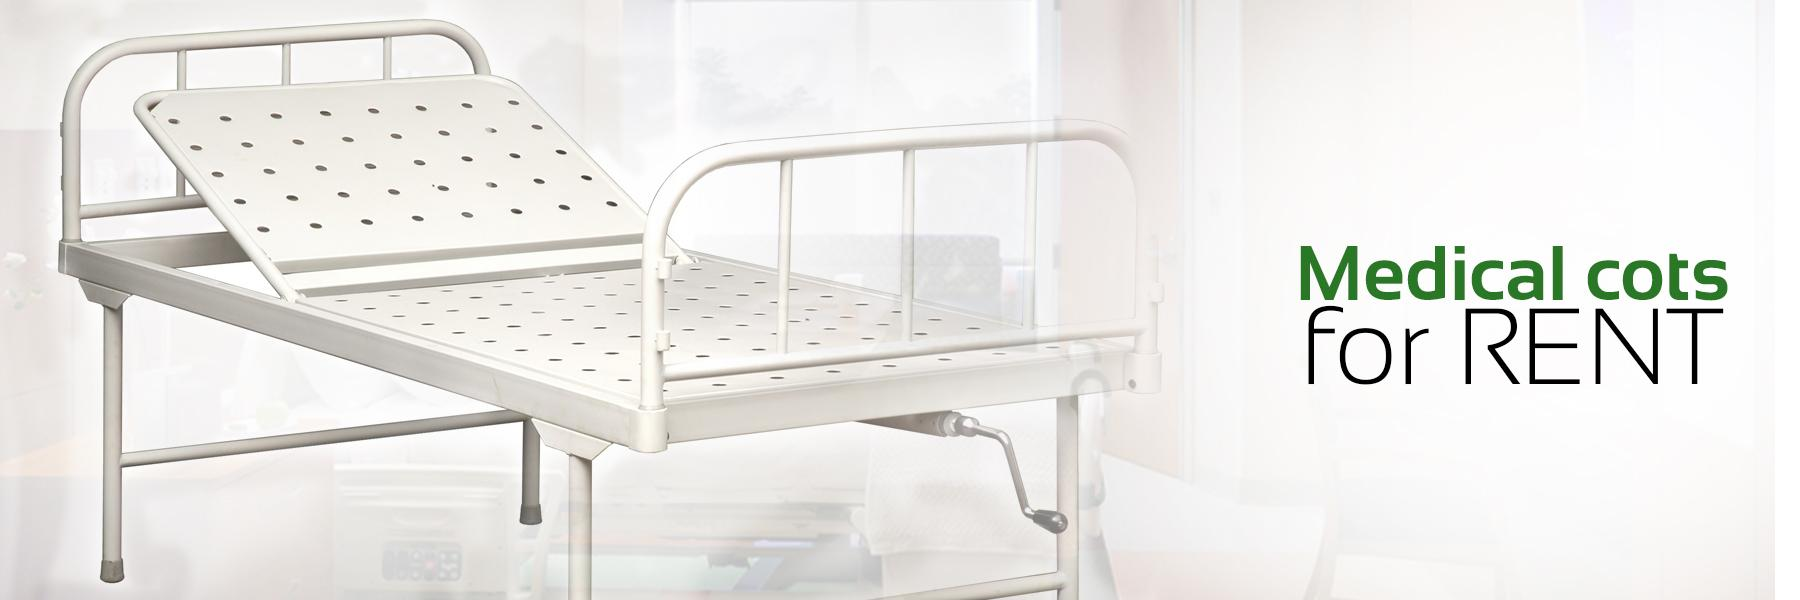 Medical cots on Rent